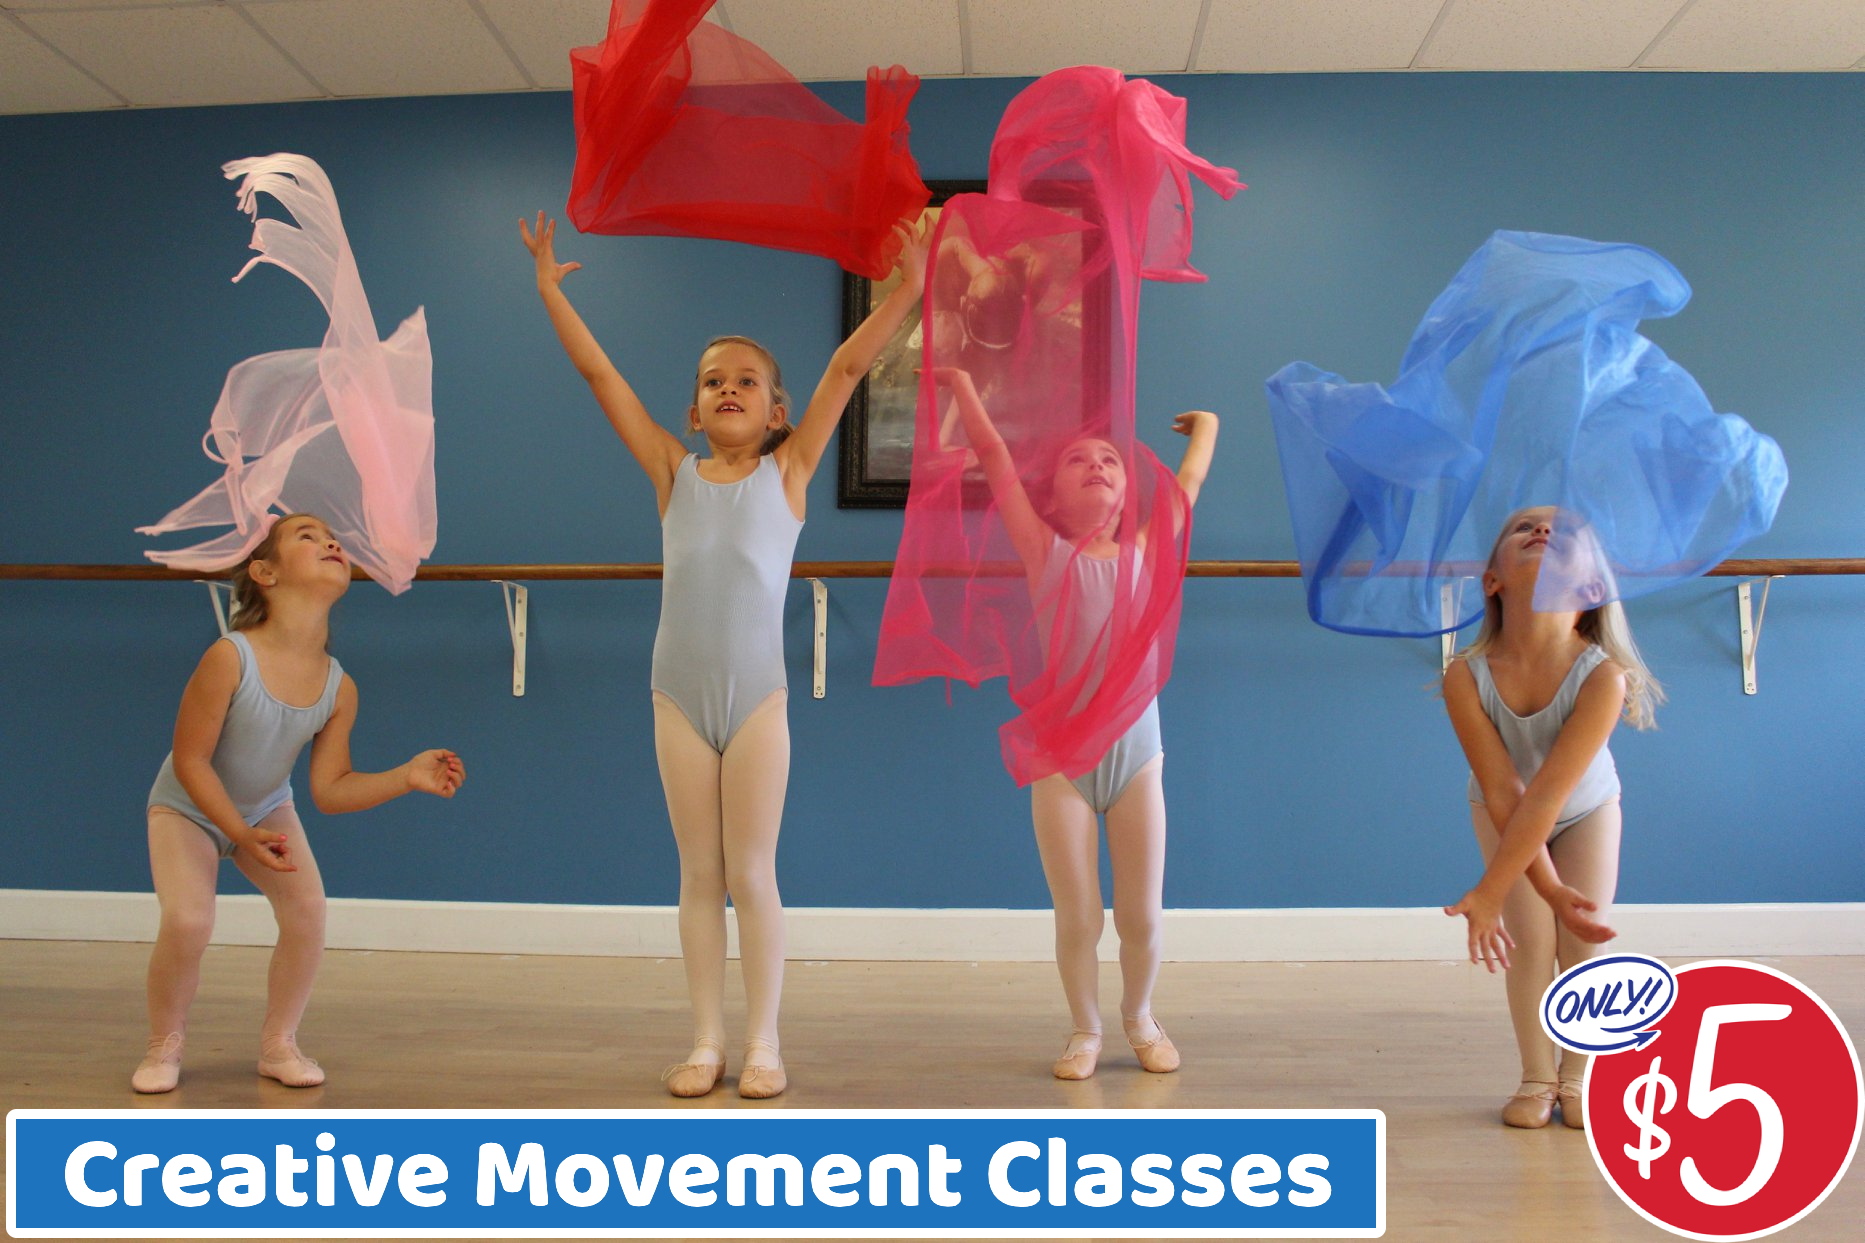 $5 Creative Movement Classes!